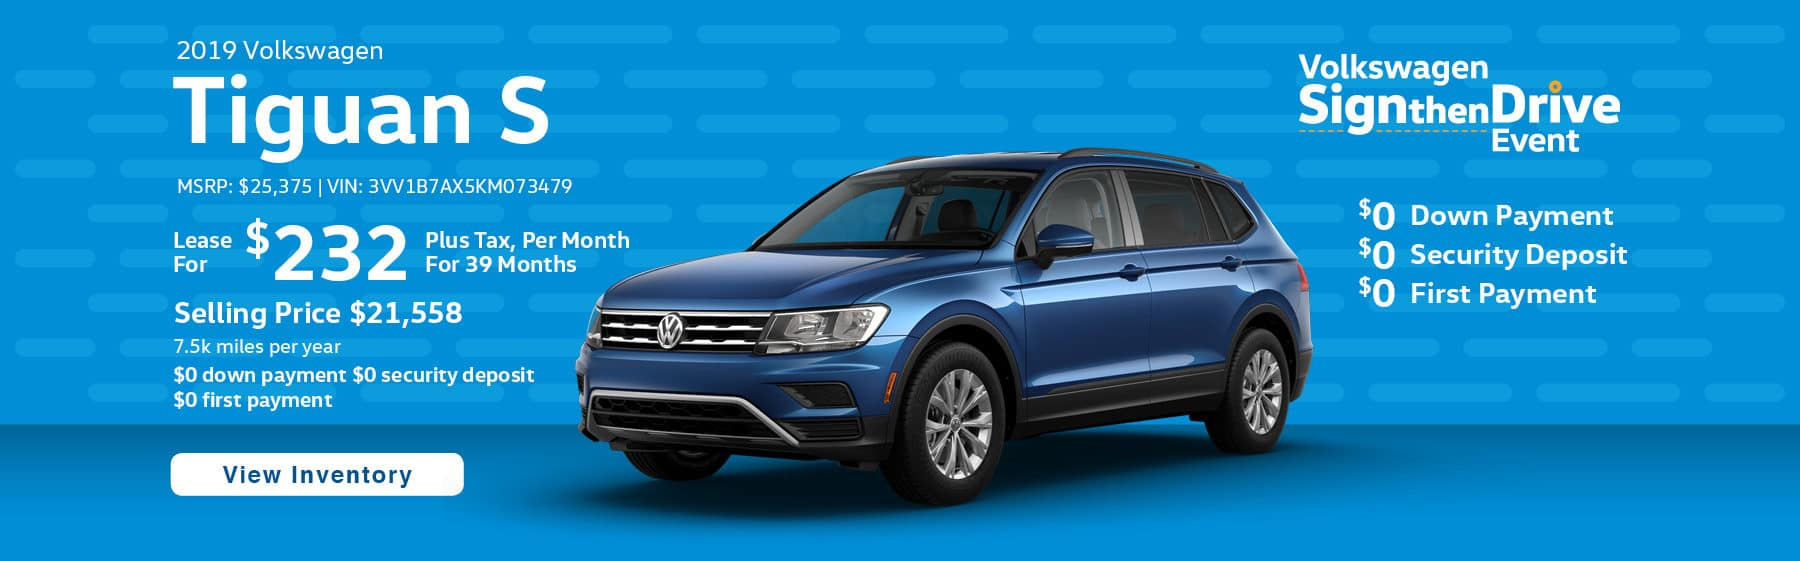 Lease the 2019 Volkswagen Tiguan S for $232 plus tax for 39 months. $0 Down payment required.